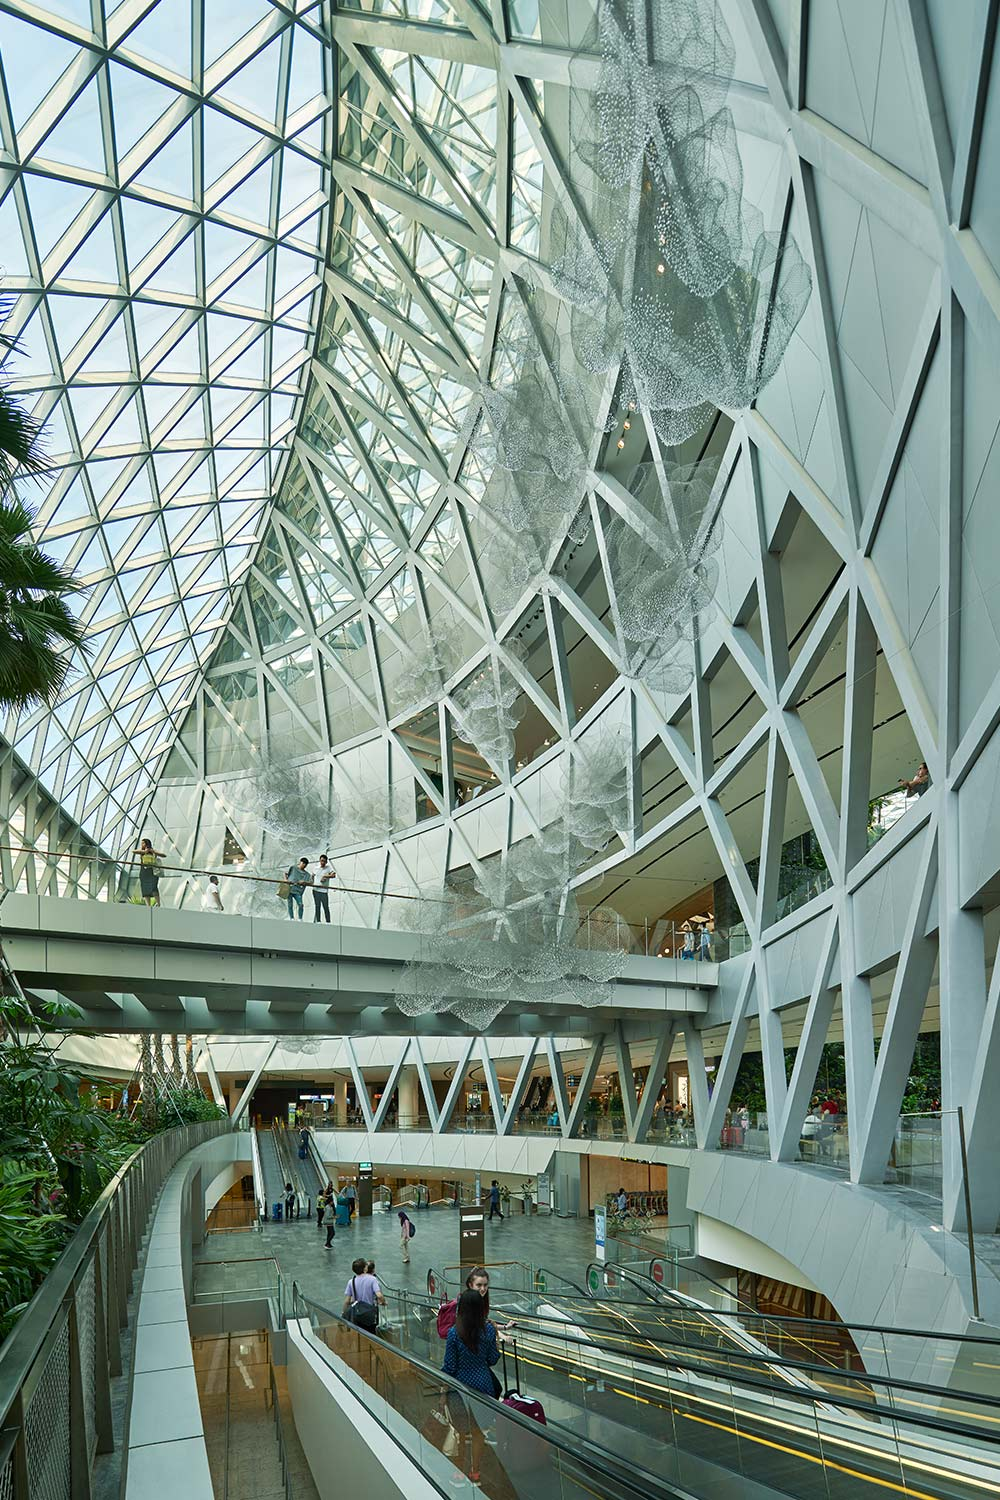 International travellers walking through the structurally unique Jewel Changi Airport